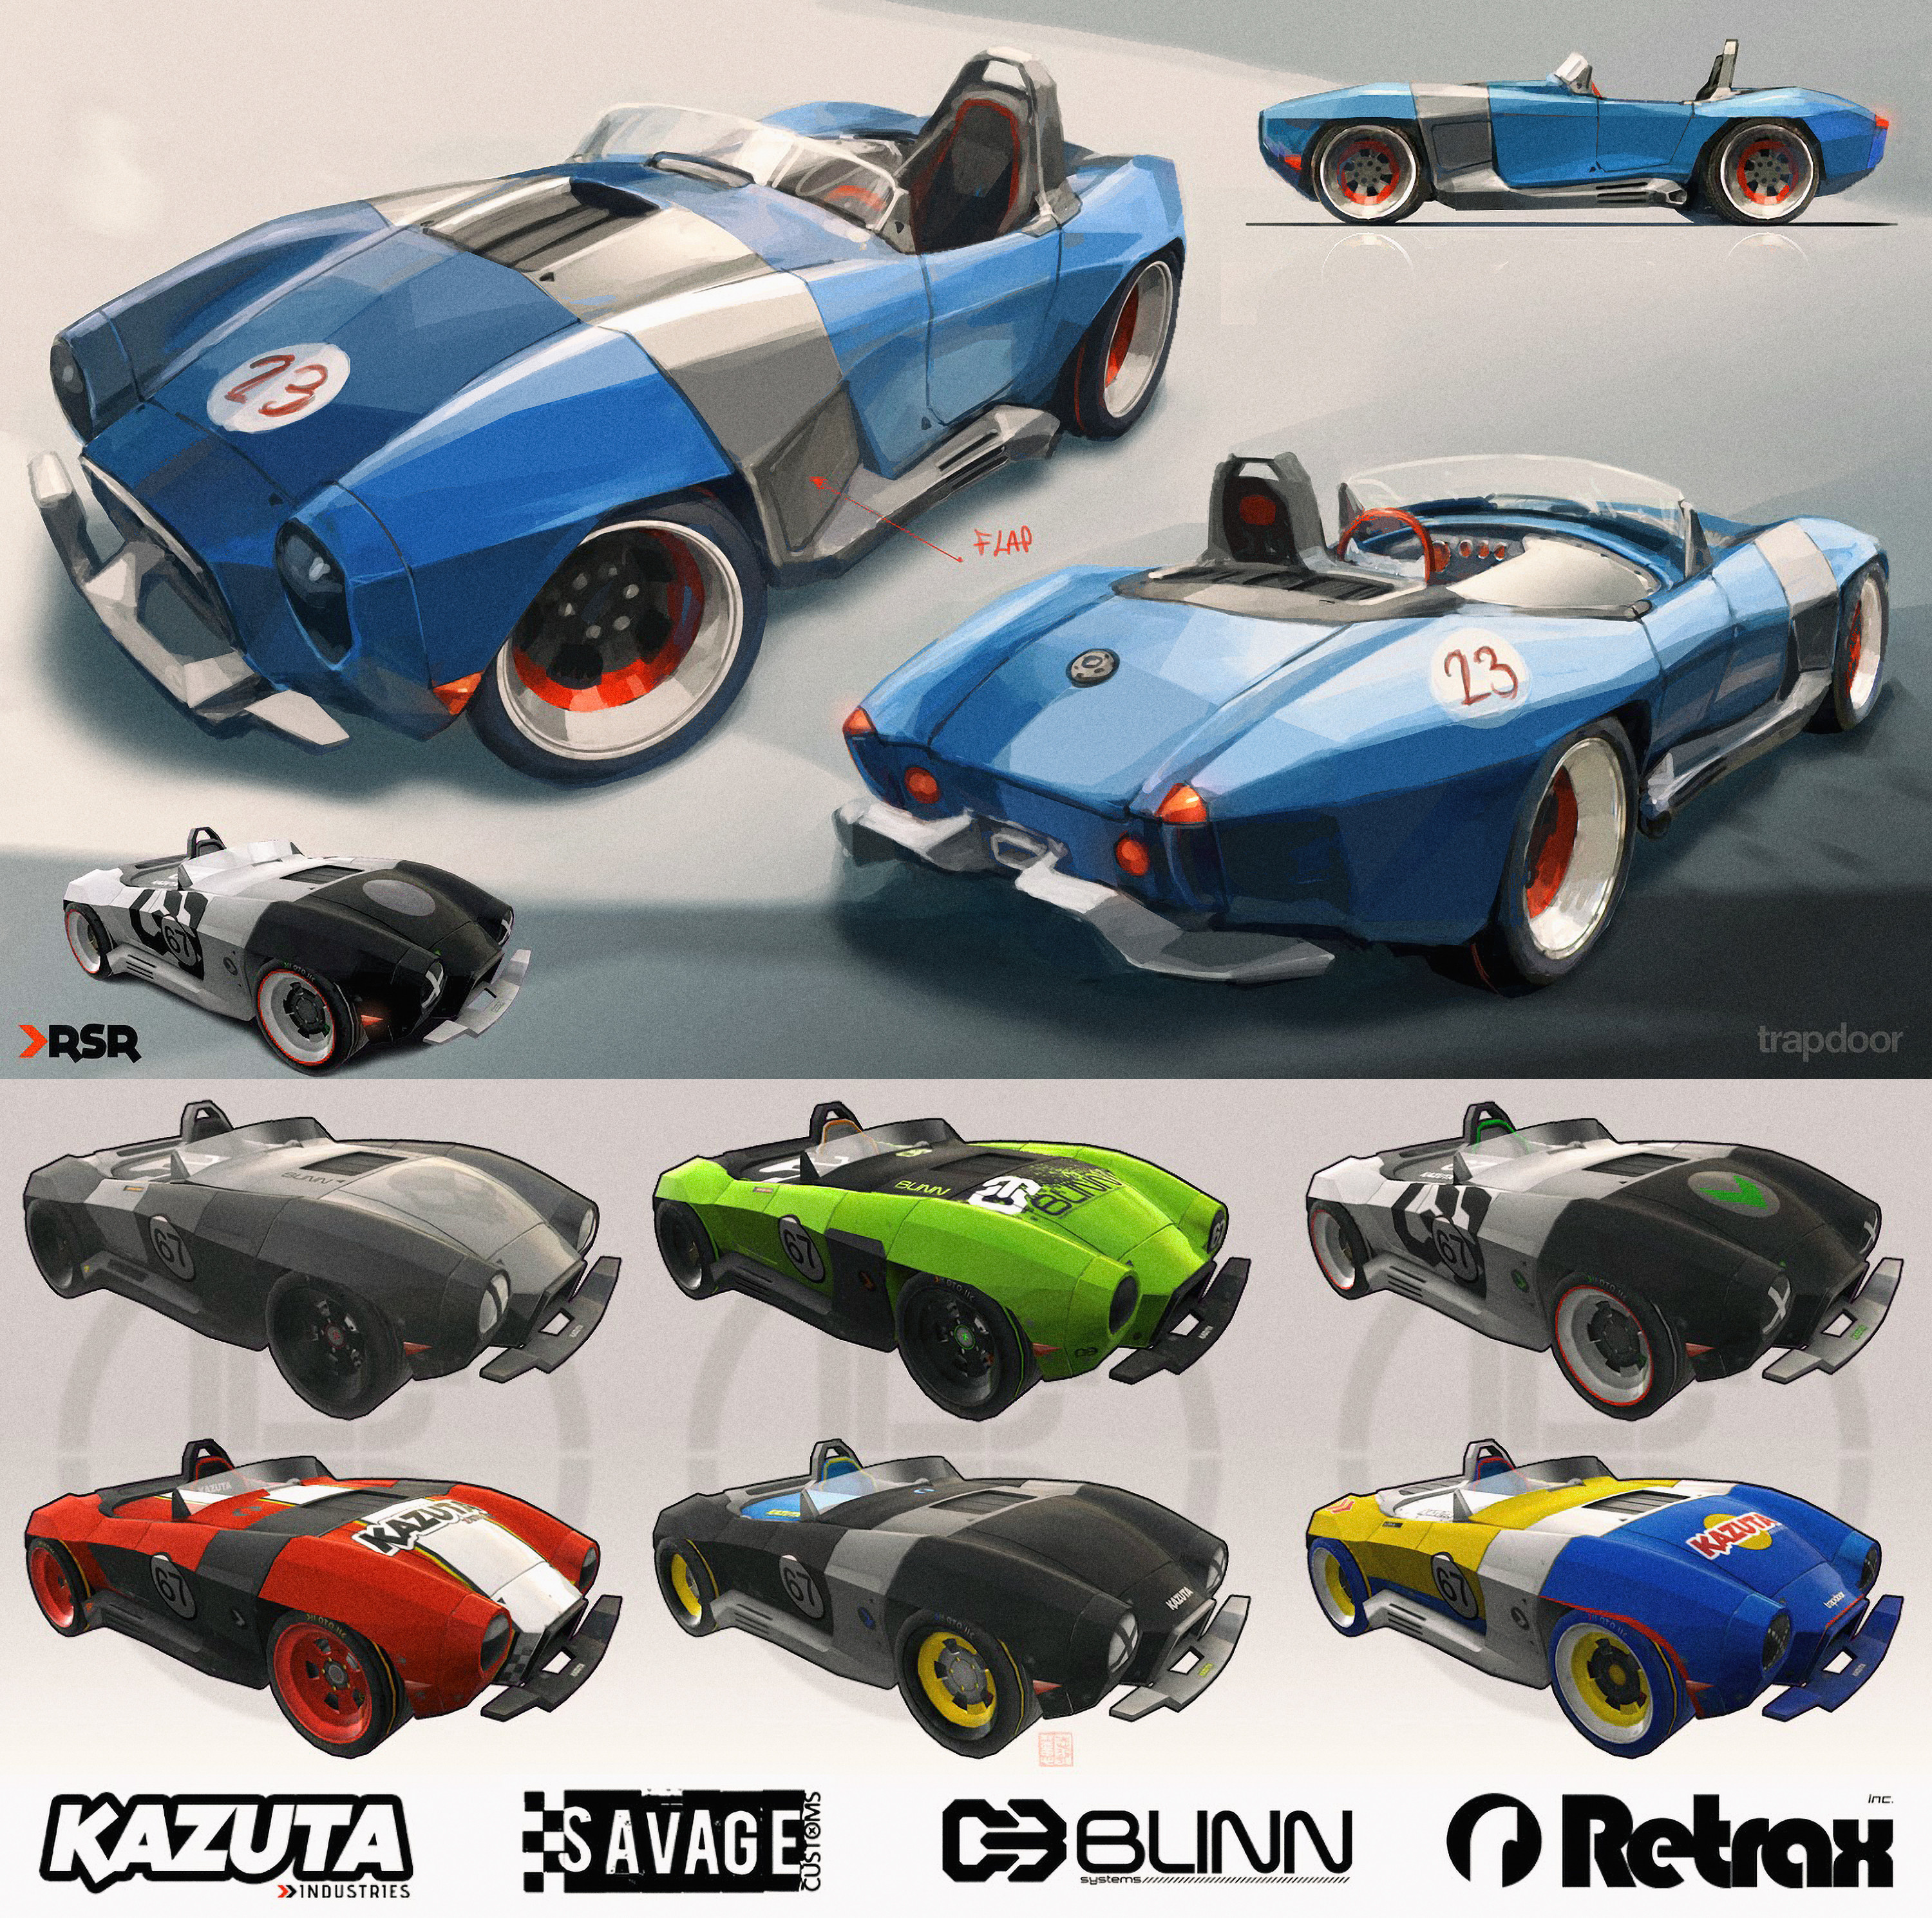 Main car directly inspired by the classic Cobra and some textures and logos I did for the models...